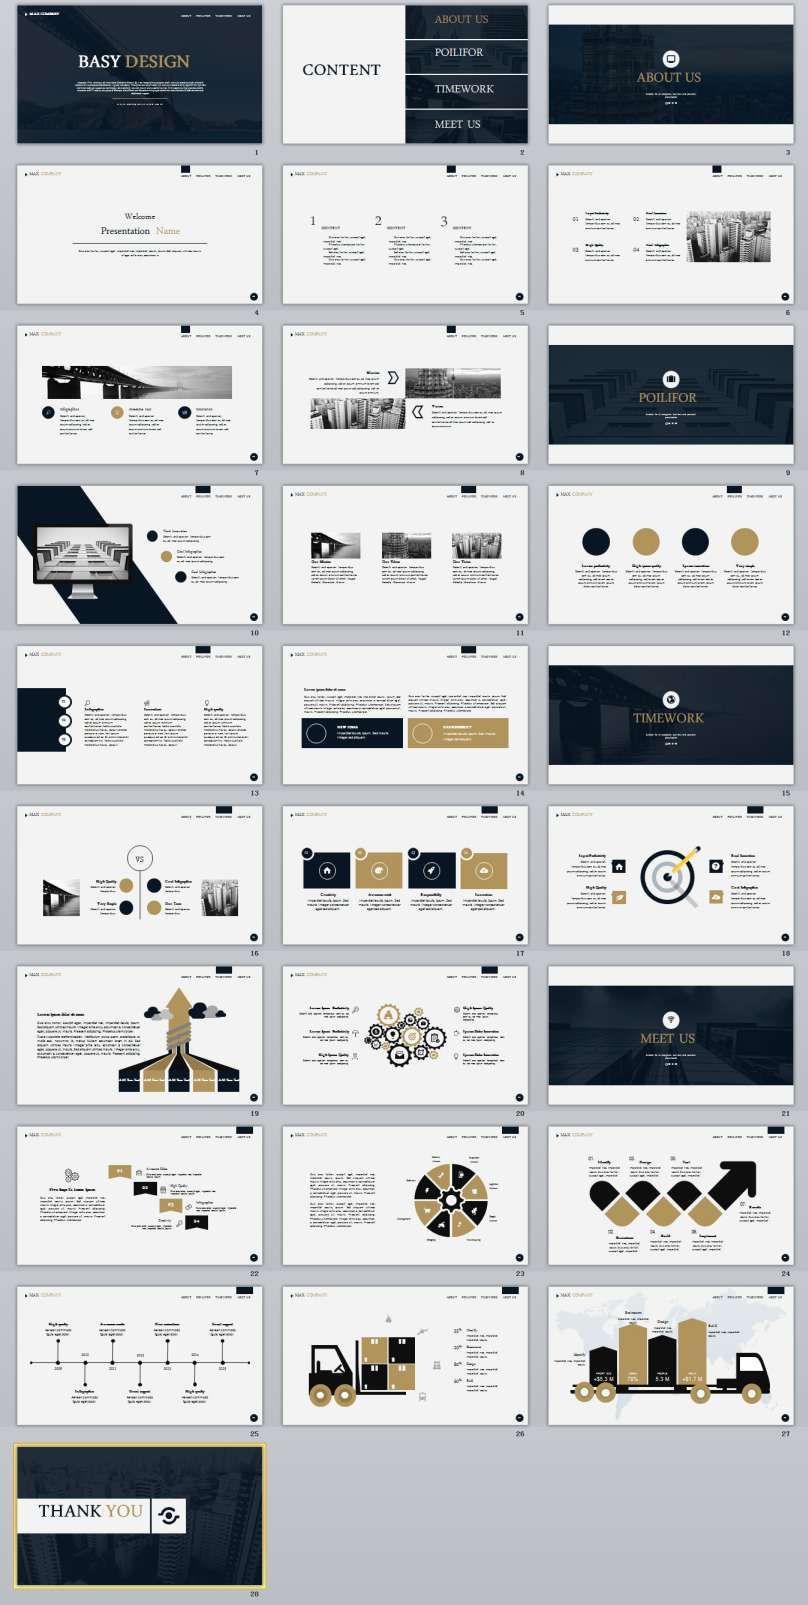 28 2018 best business powerpoint templates business powerpoint 28 2018 best business powerpoint templates the highest quality powerpoint templates and keynote templates toneelgroepblik Choice Image